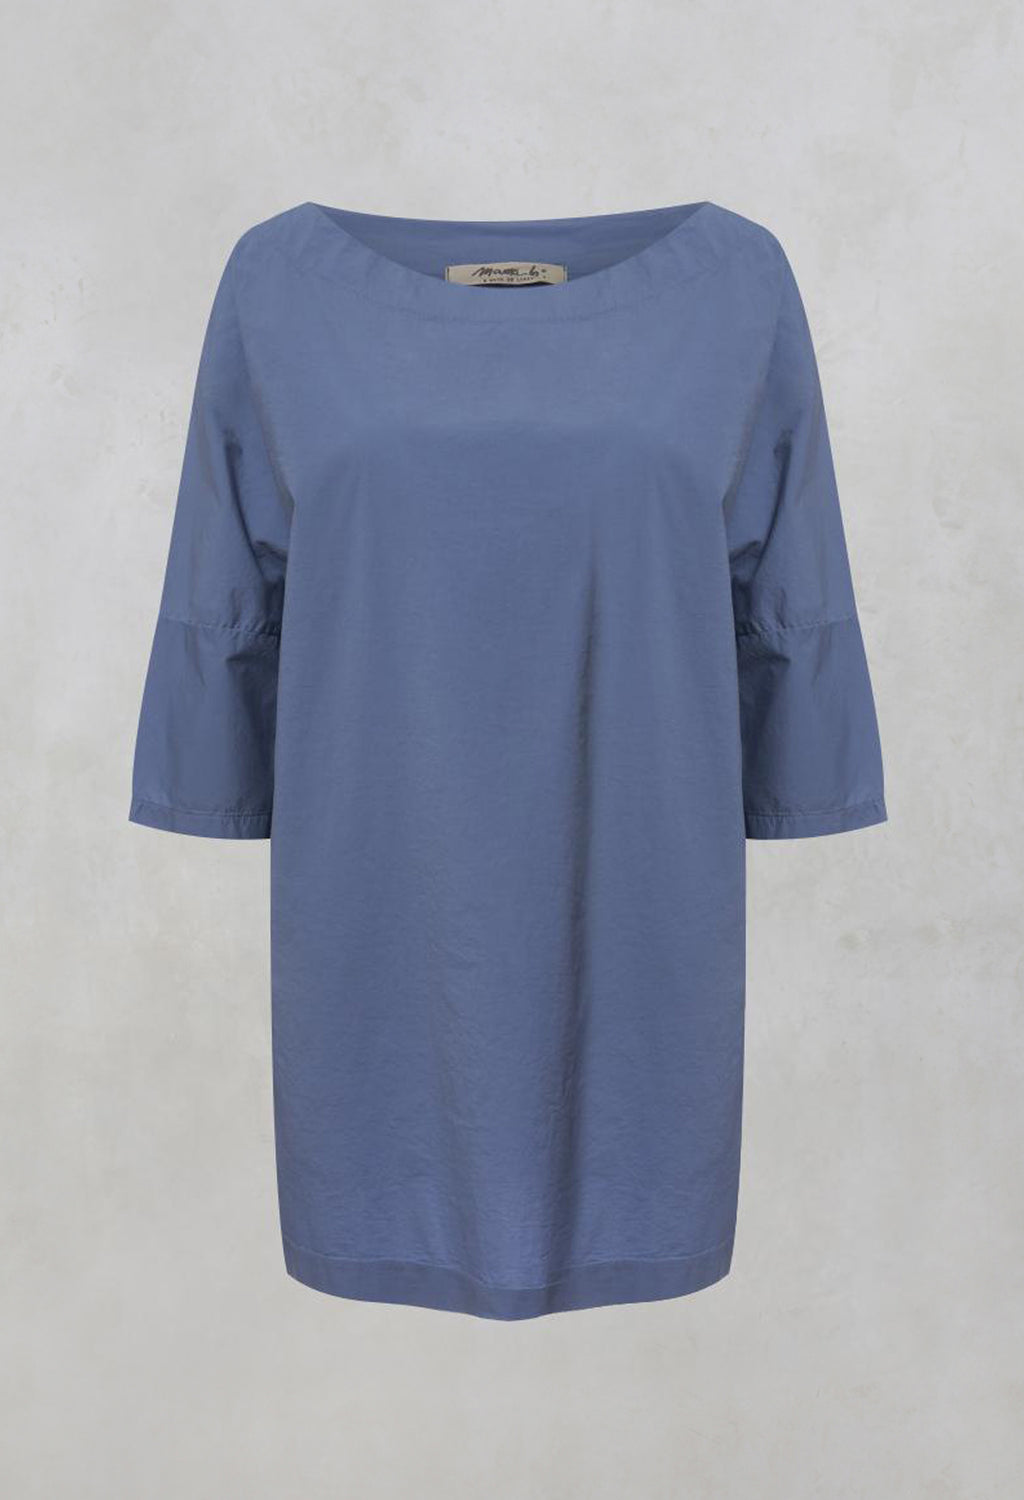 Verbena Relaxed Fit Top with Cowl Neck in Sky